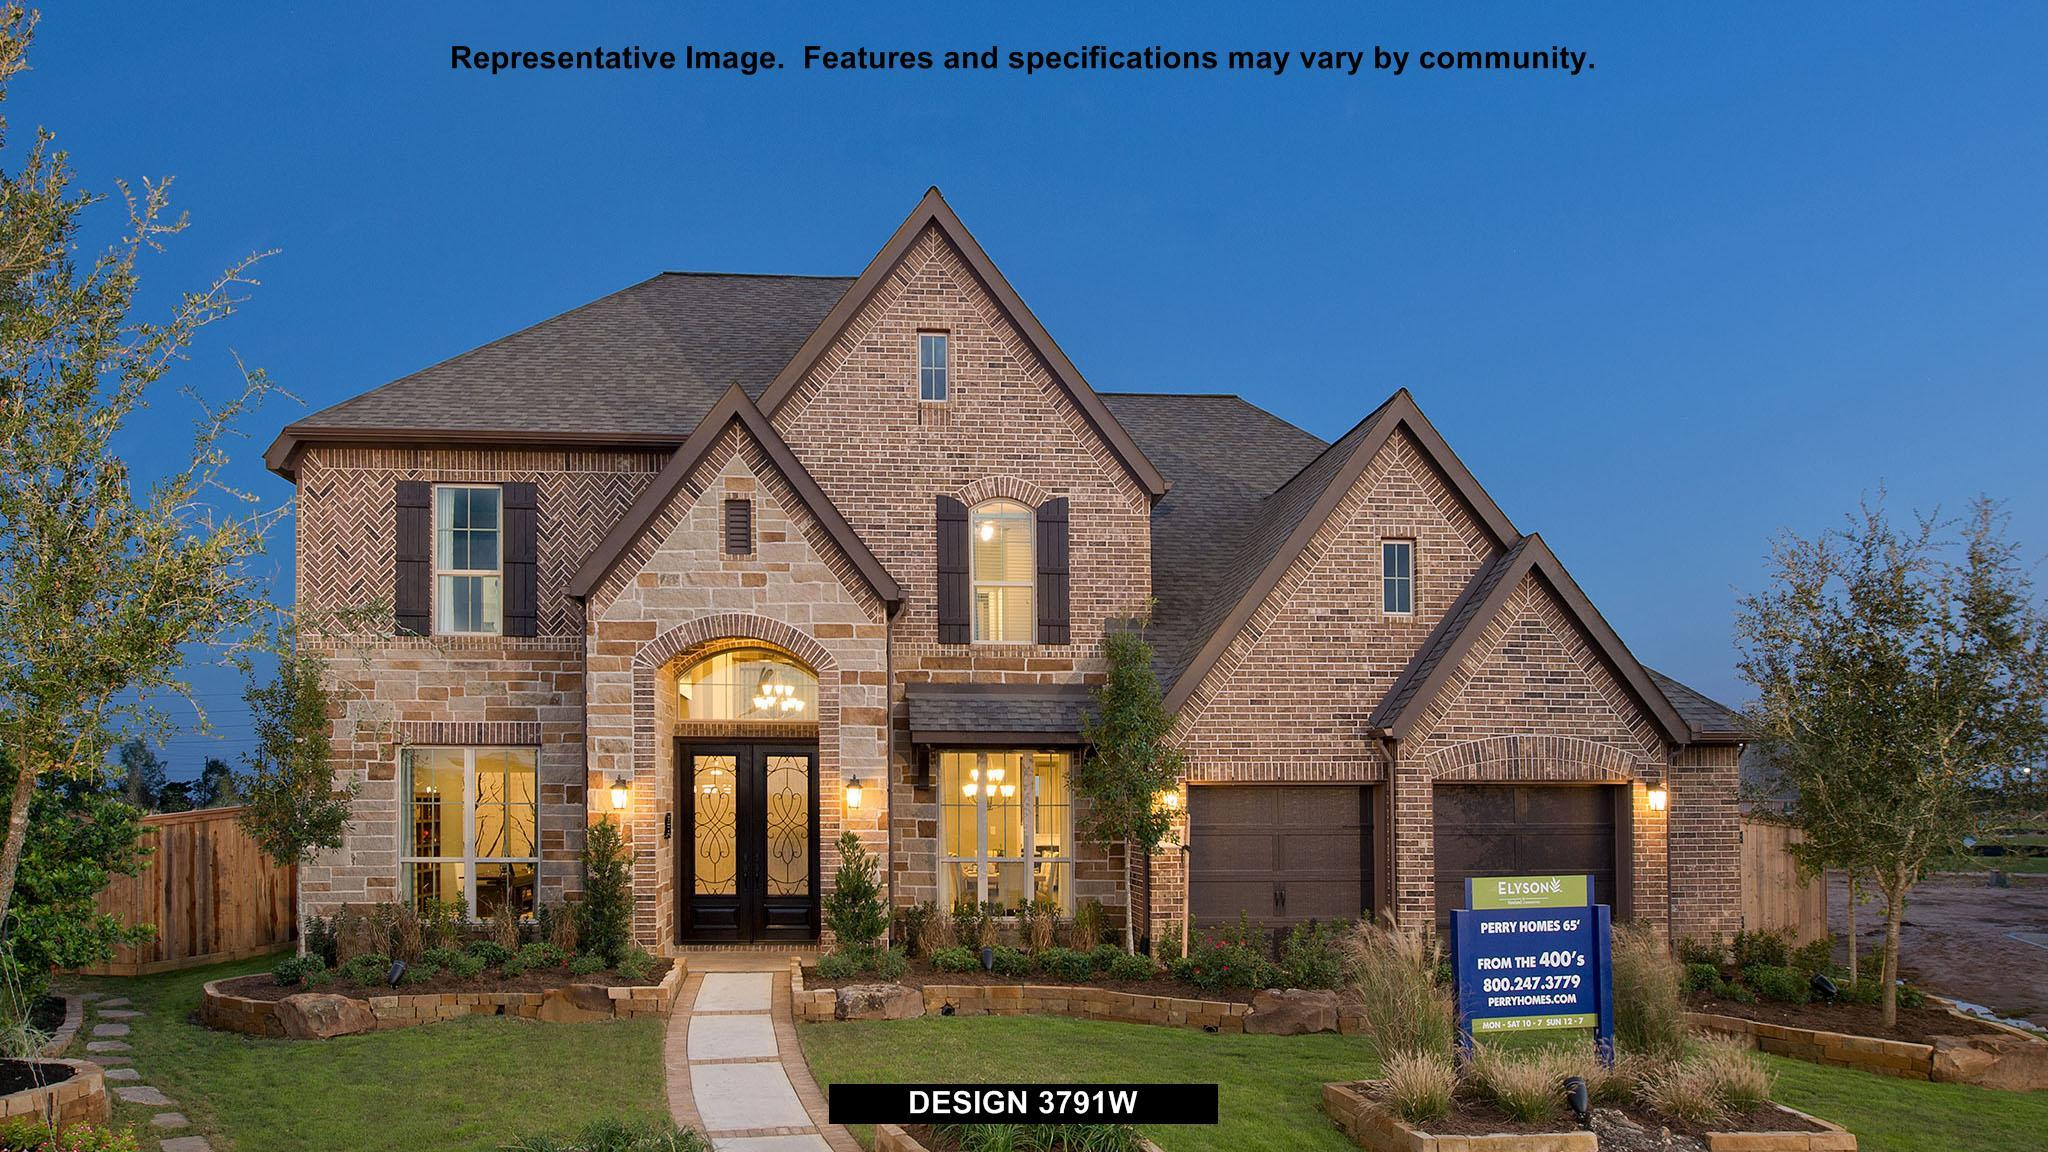 3791W - Riverstone 65': Sugar Land, TX - Perry Homes